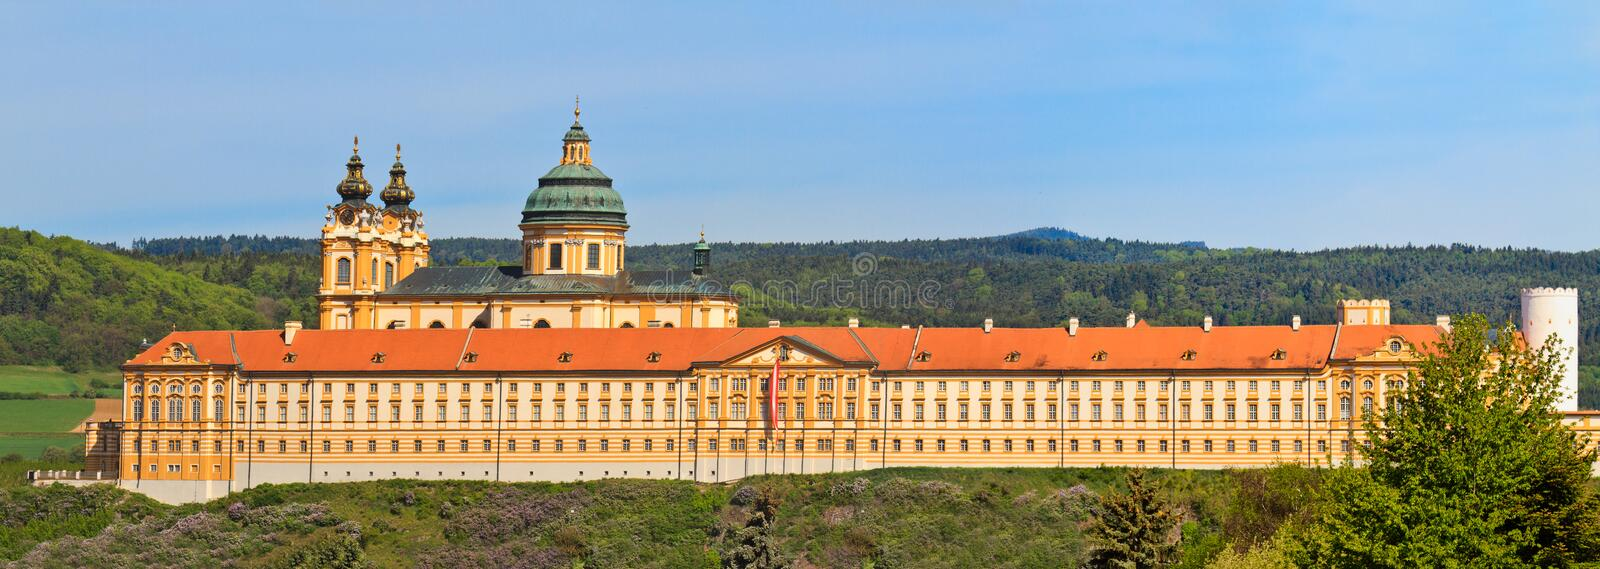 Download Melk Panorama - Famous Baroque Abbey Stock Image - Image: 25092855